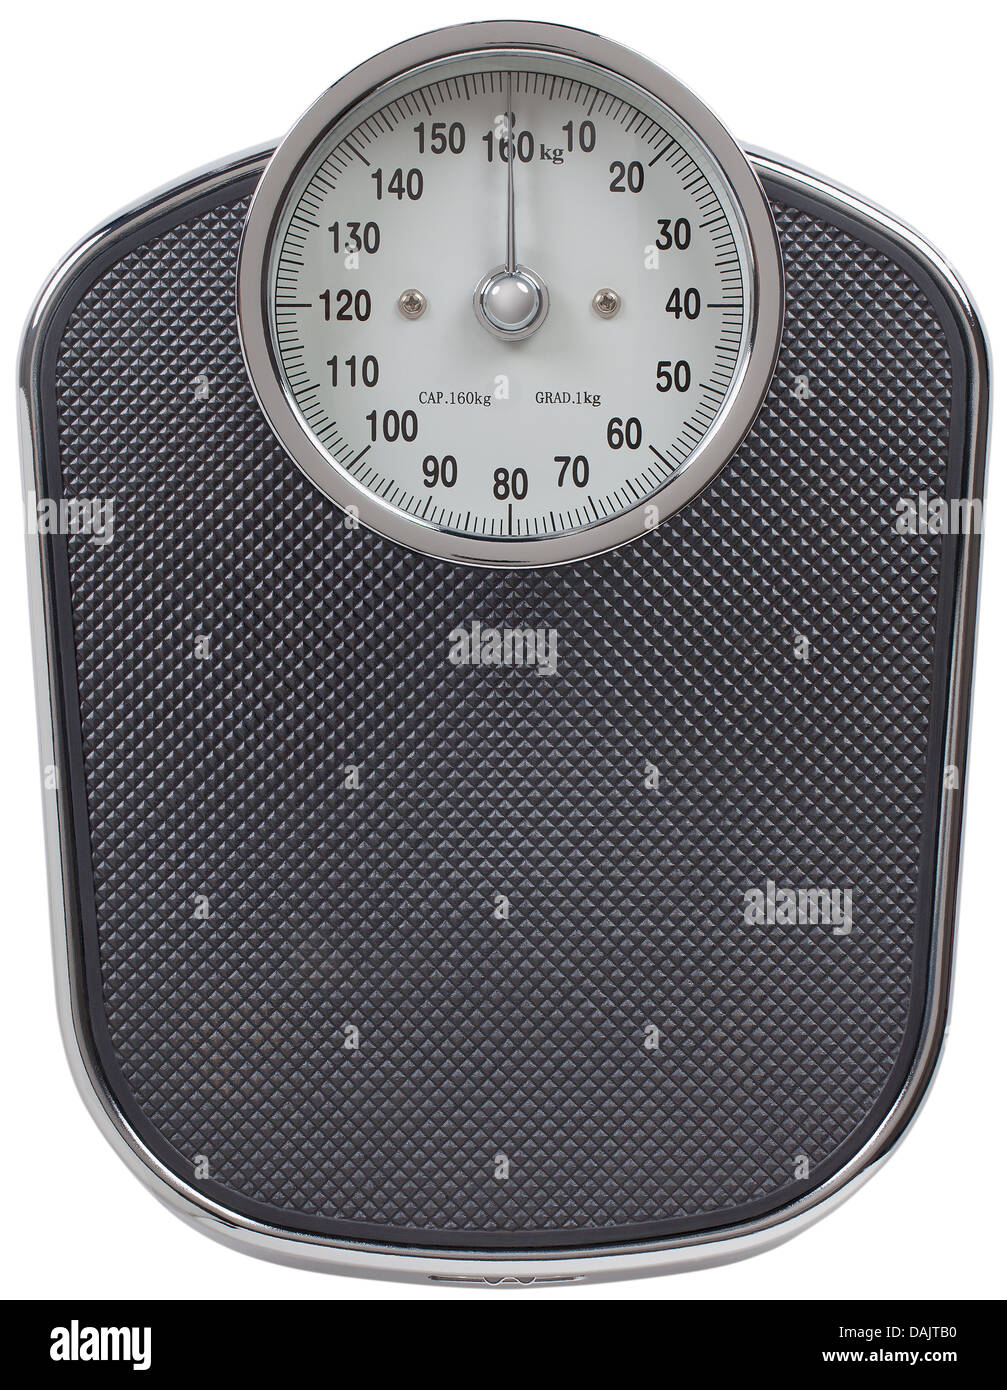 Analog scale on white background, close up - Stock Image